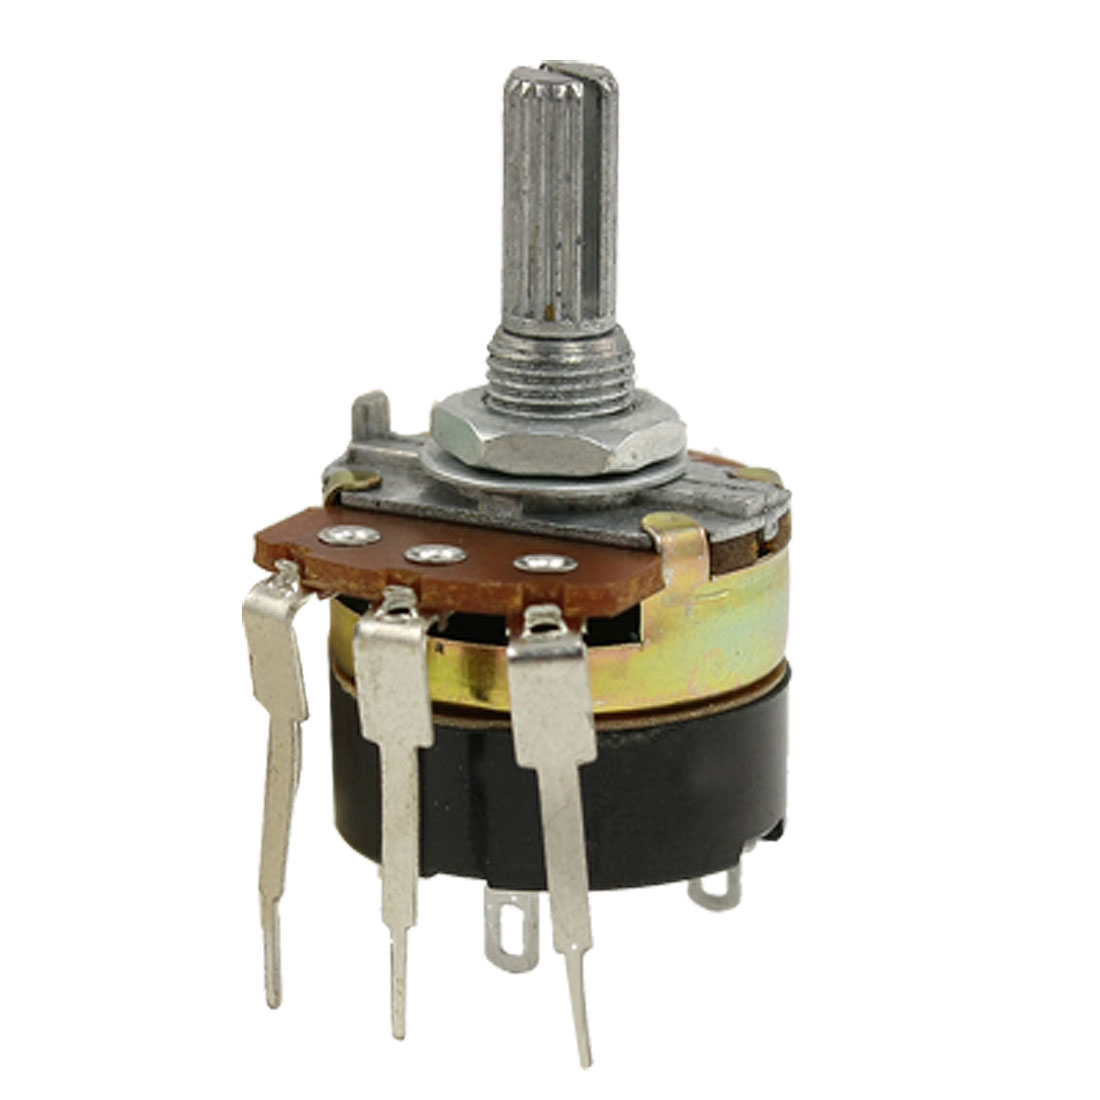 6mm Knurled Split Shaft Three Terminal 500K ohm Linear Taper Potentiometer B500K